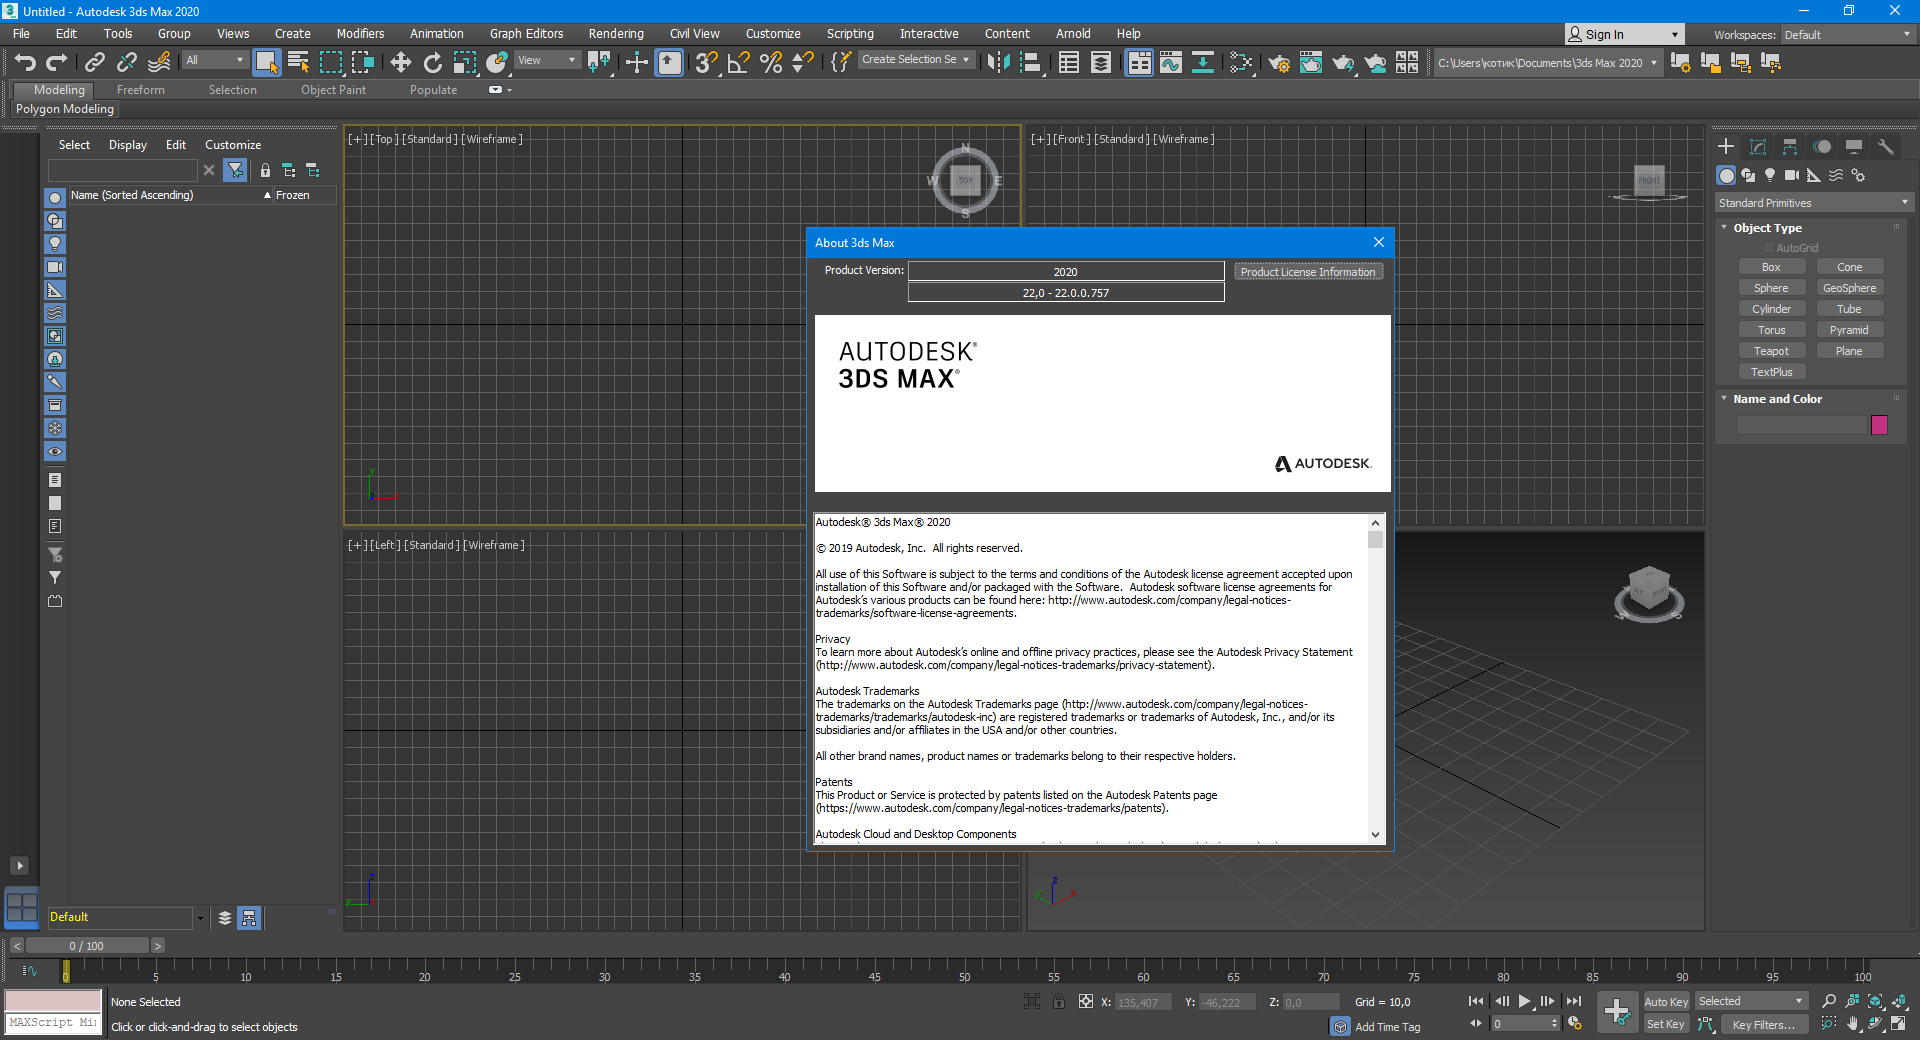 Working with Autodesk 3ds Max 2020 full license